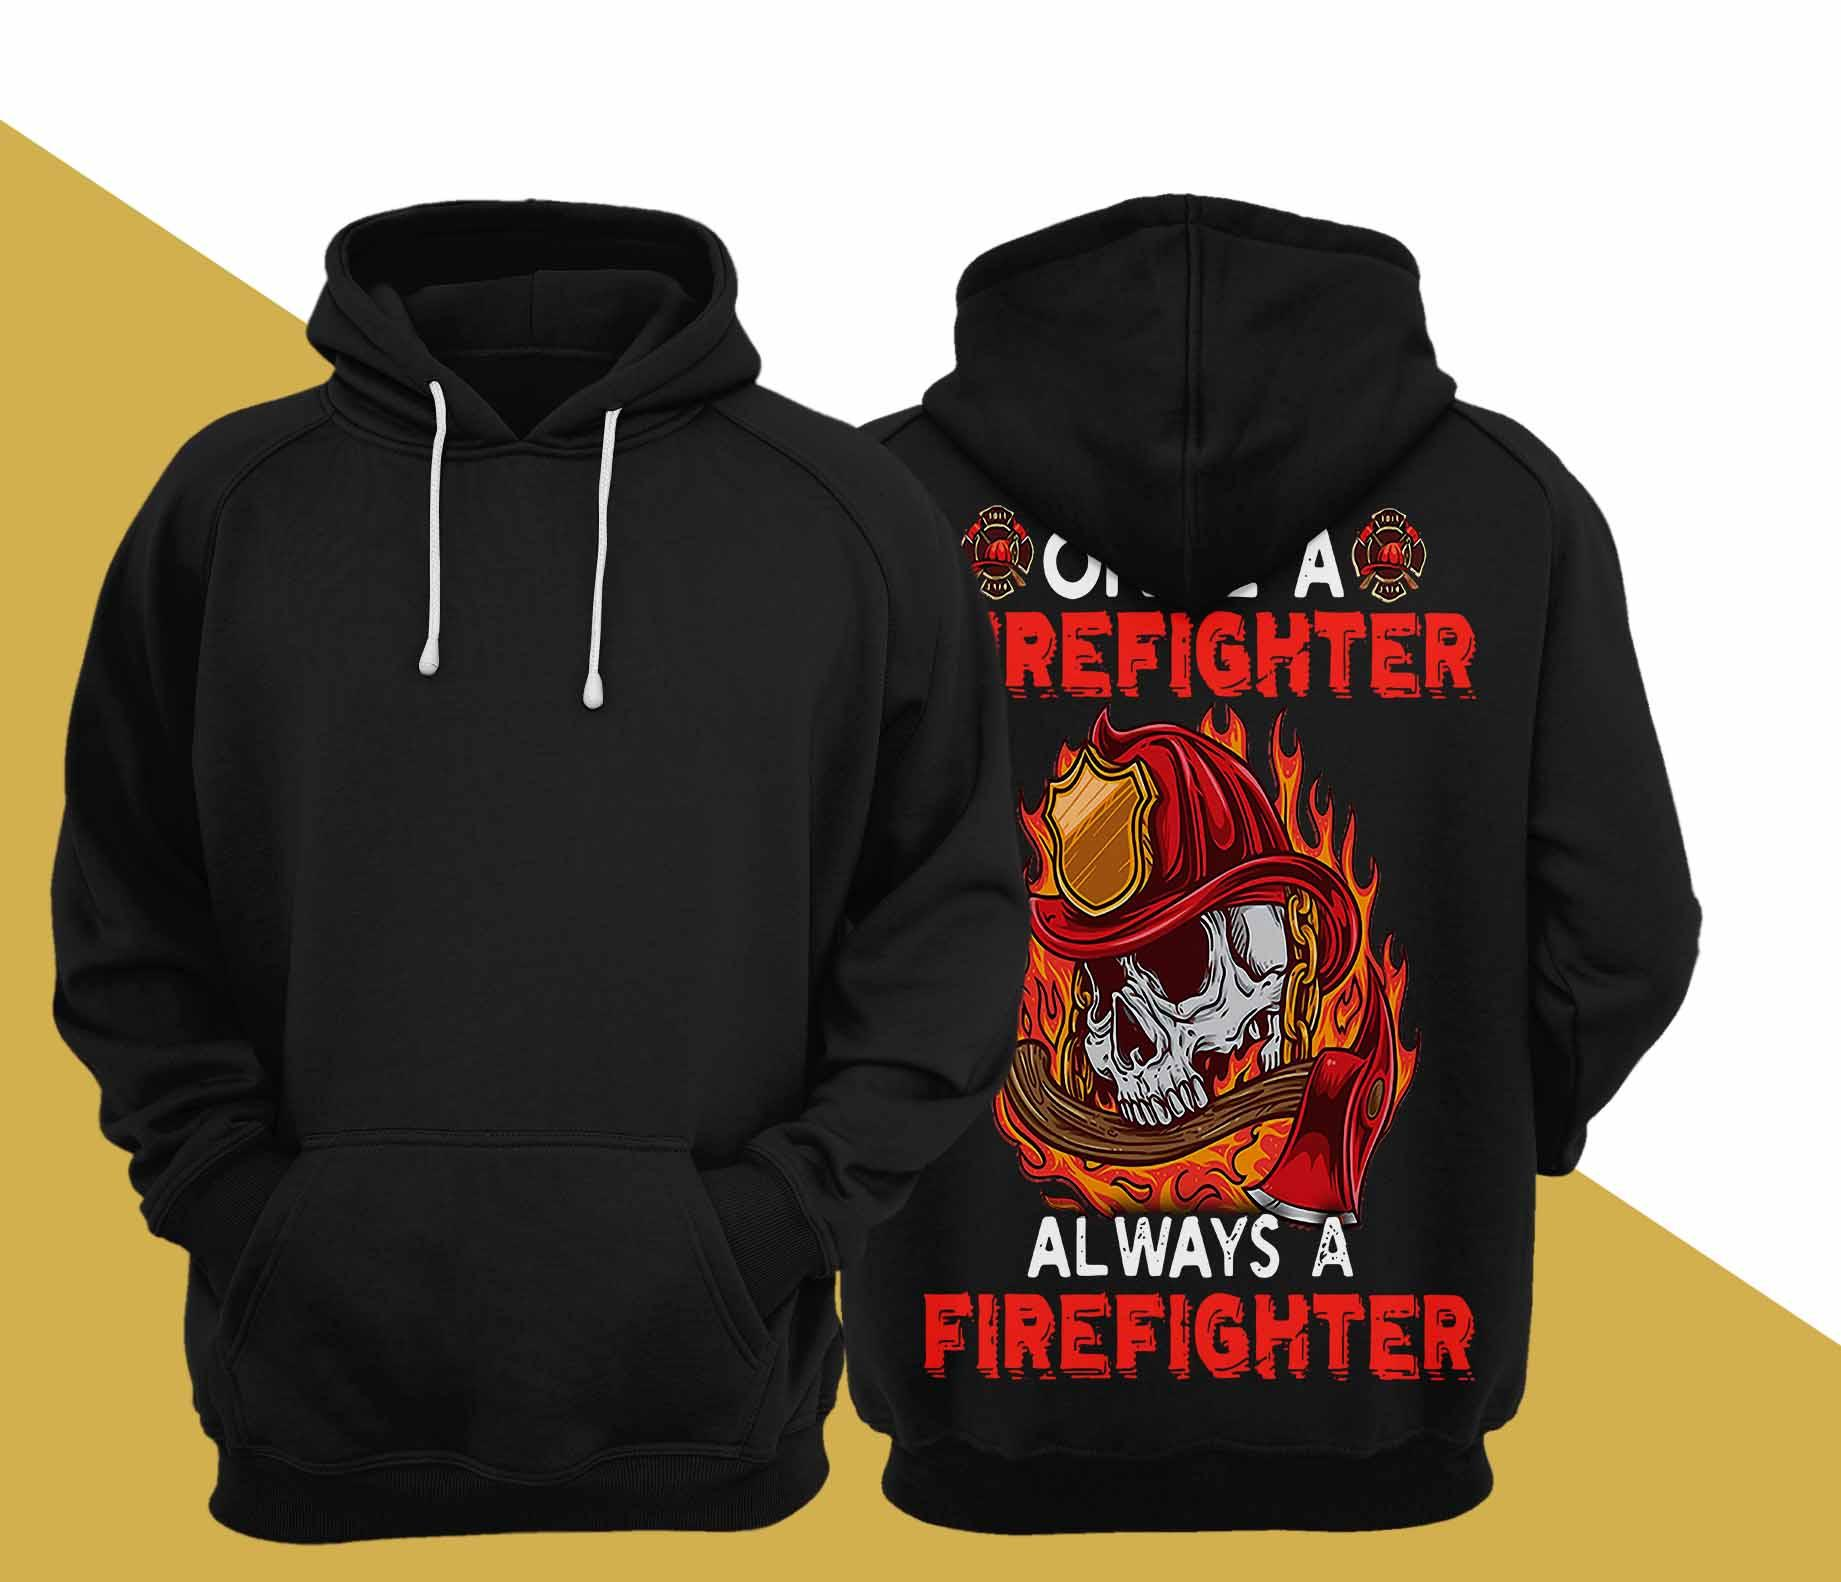 Once A Firefighter Always A Firefighter Hoodie